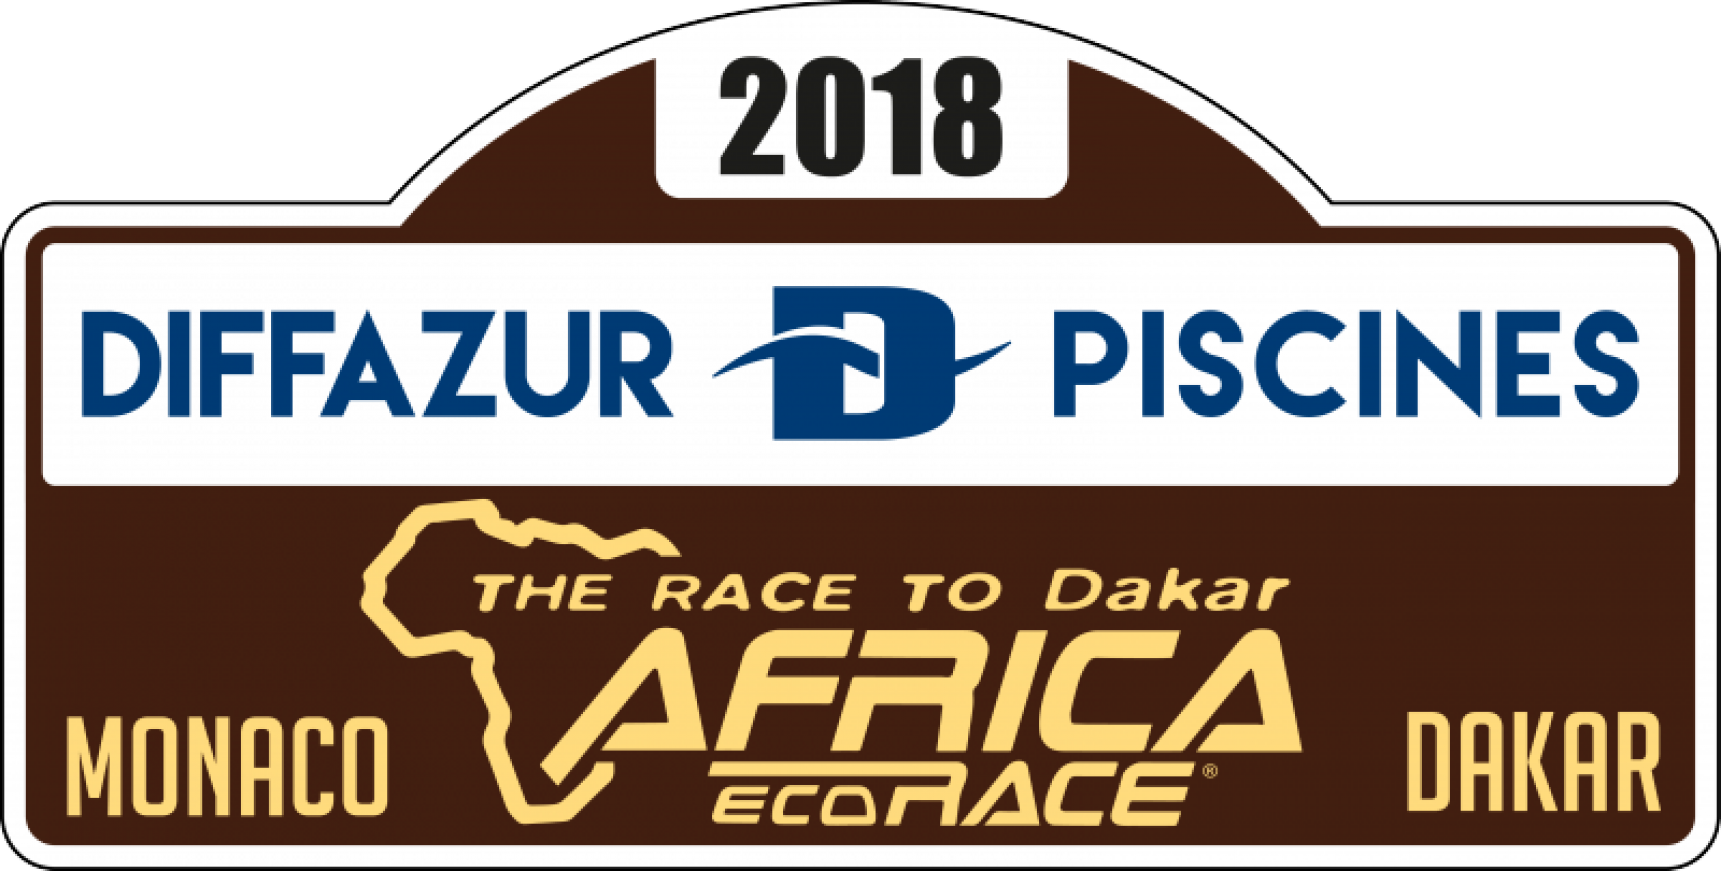 L'Africa Eco Race en direct